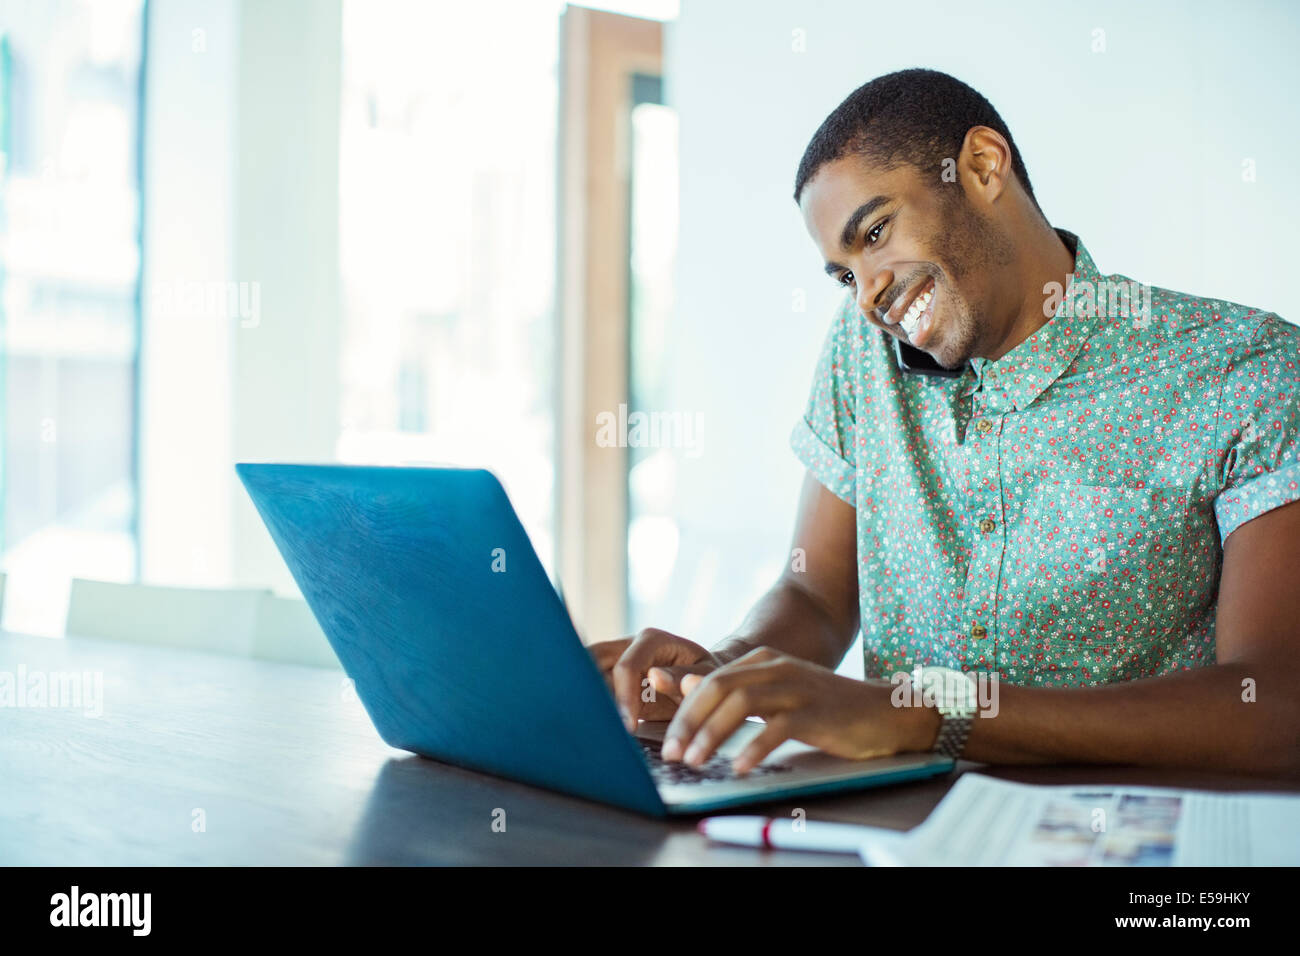 Man using laptop at desk in office - Stock Image